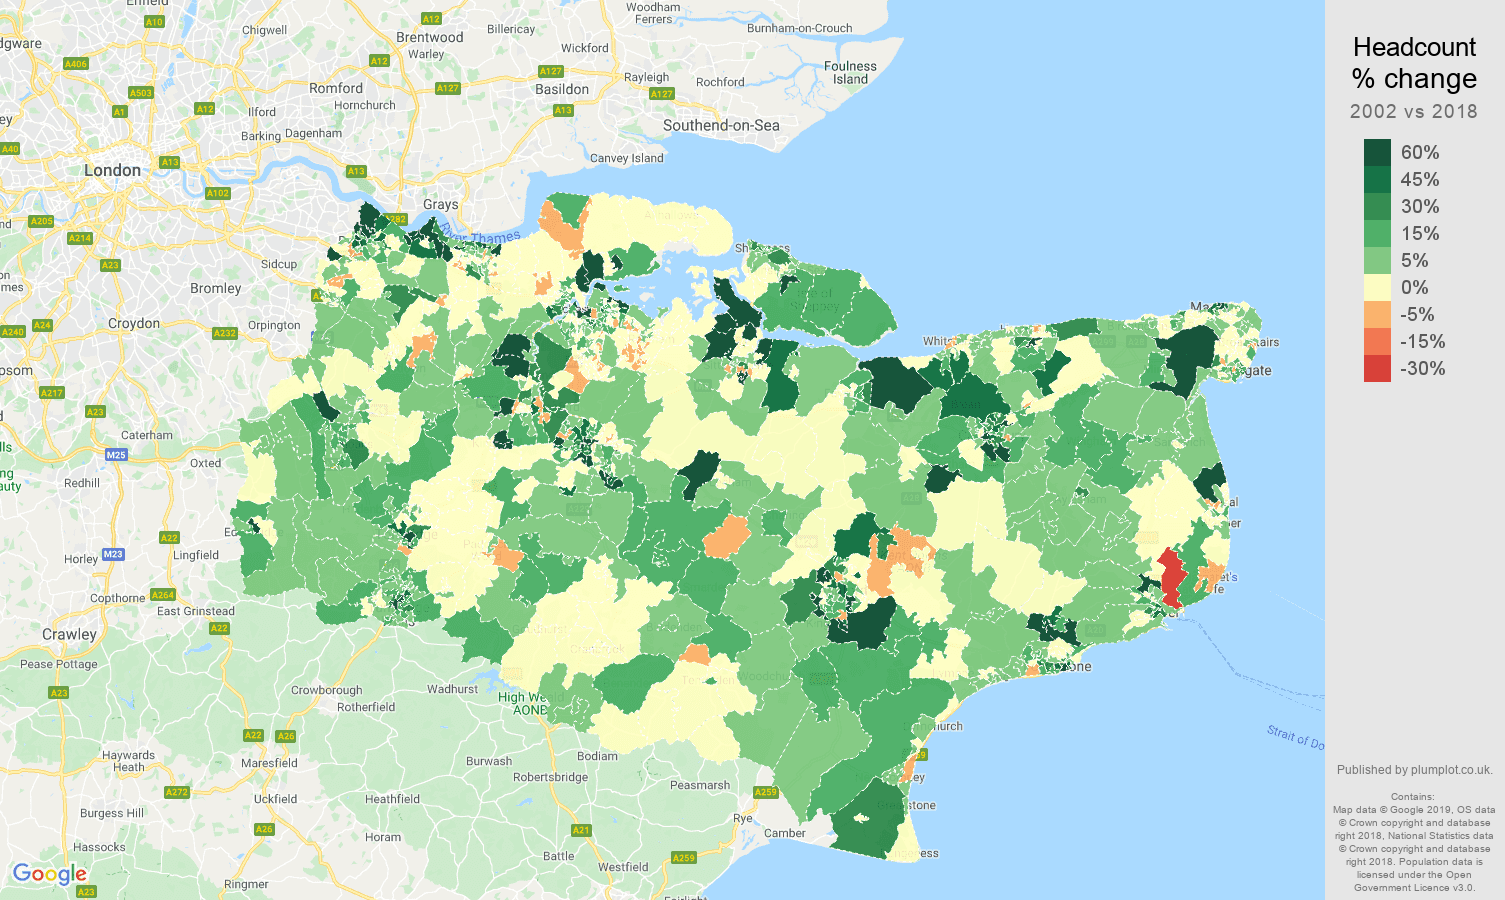 Kent headcount change map